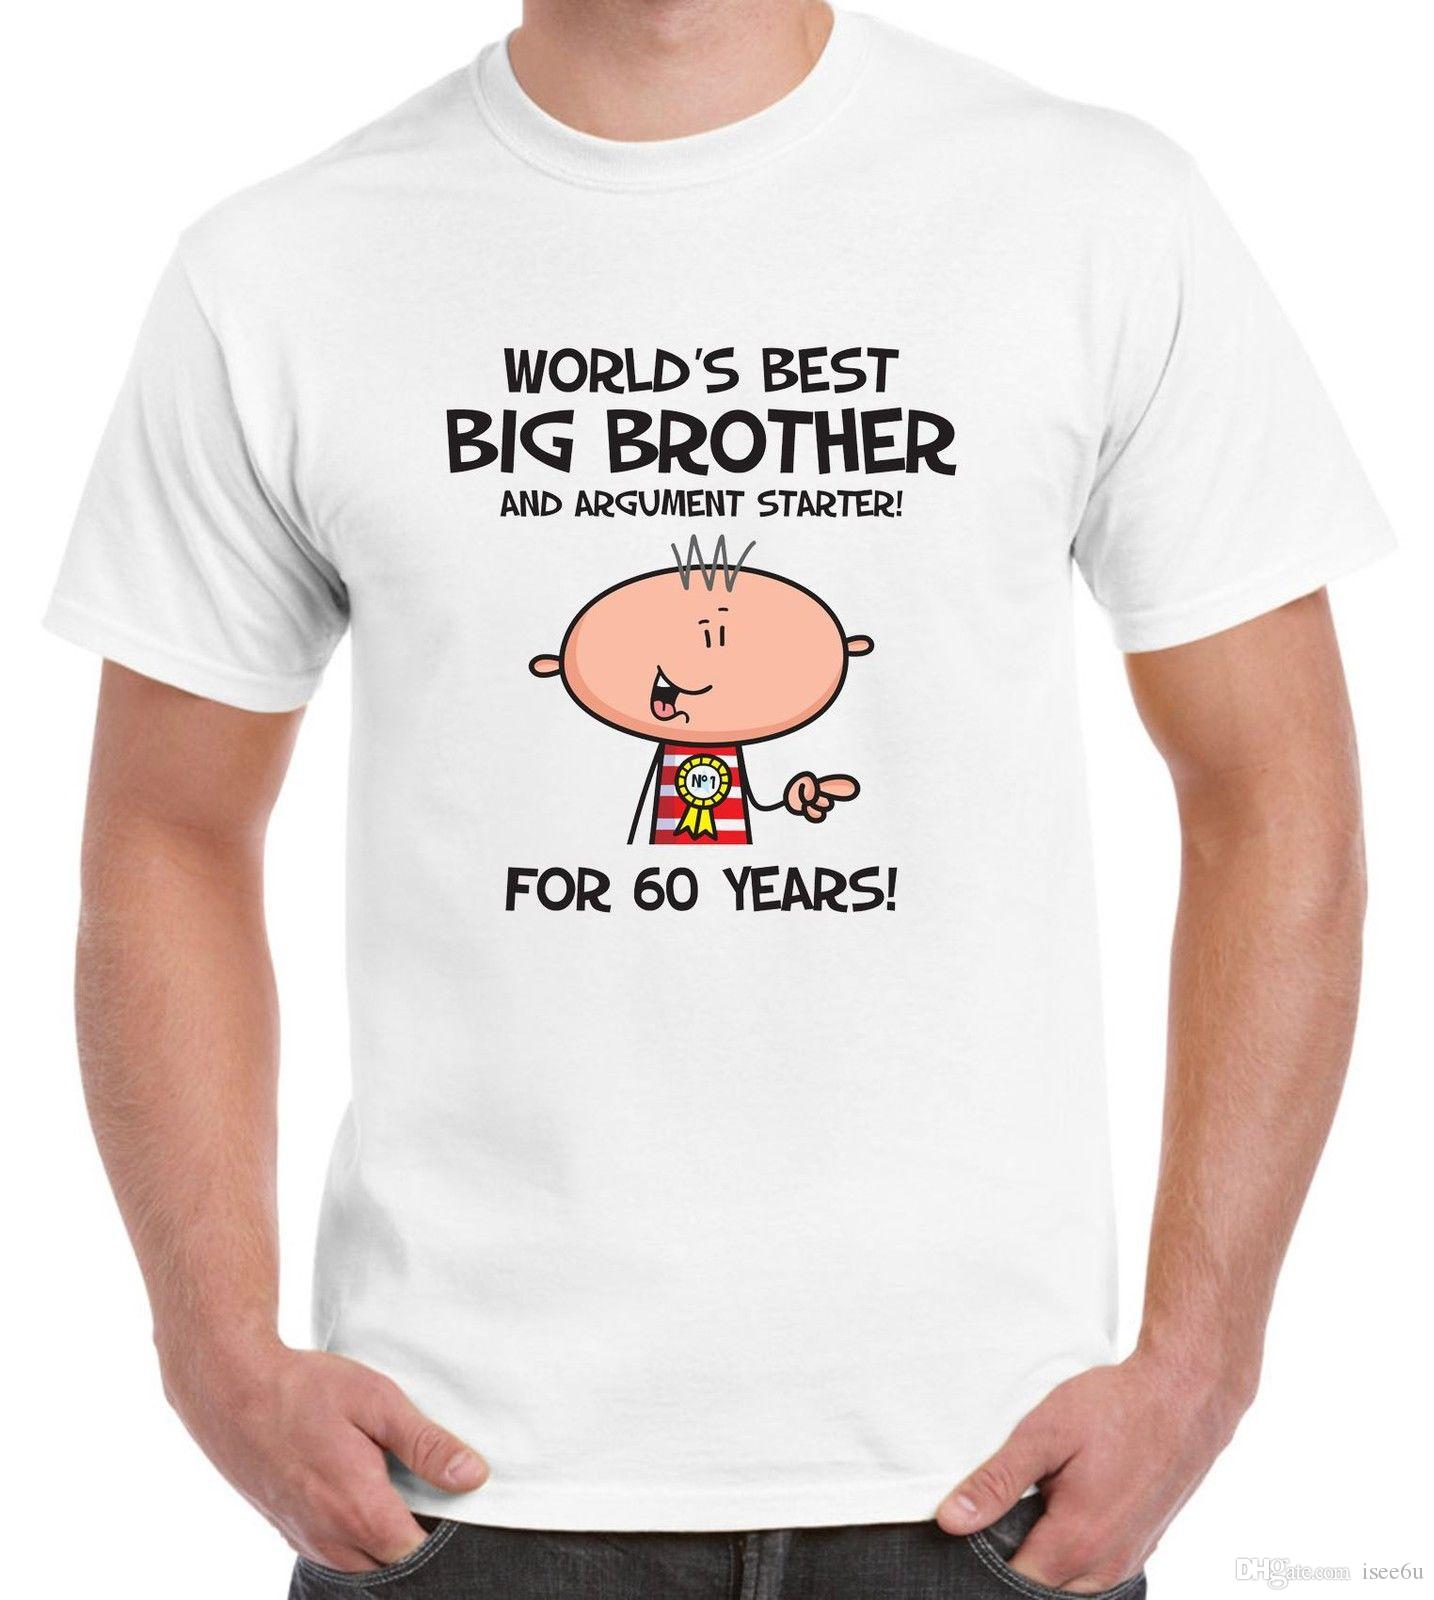 Worlds Best Big Brother MenS 60th Birthday Present T Shirt Gift Buy Fun From Isee6u 1207